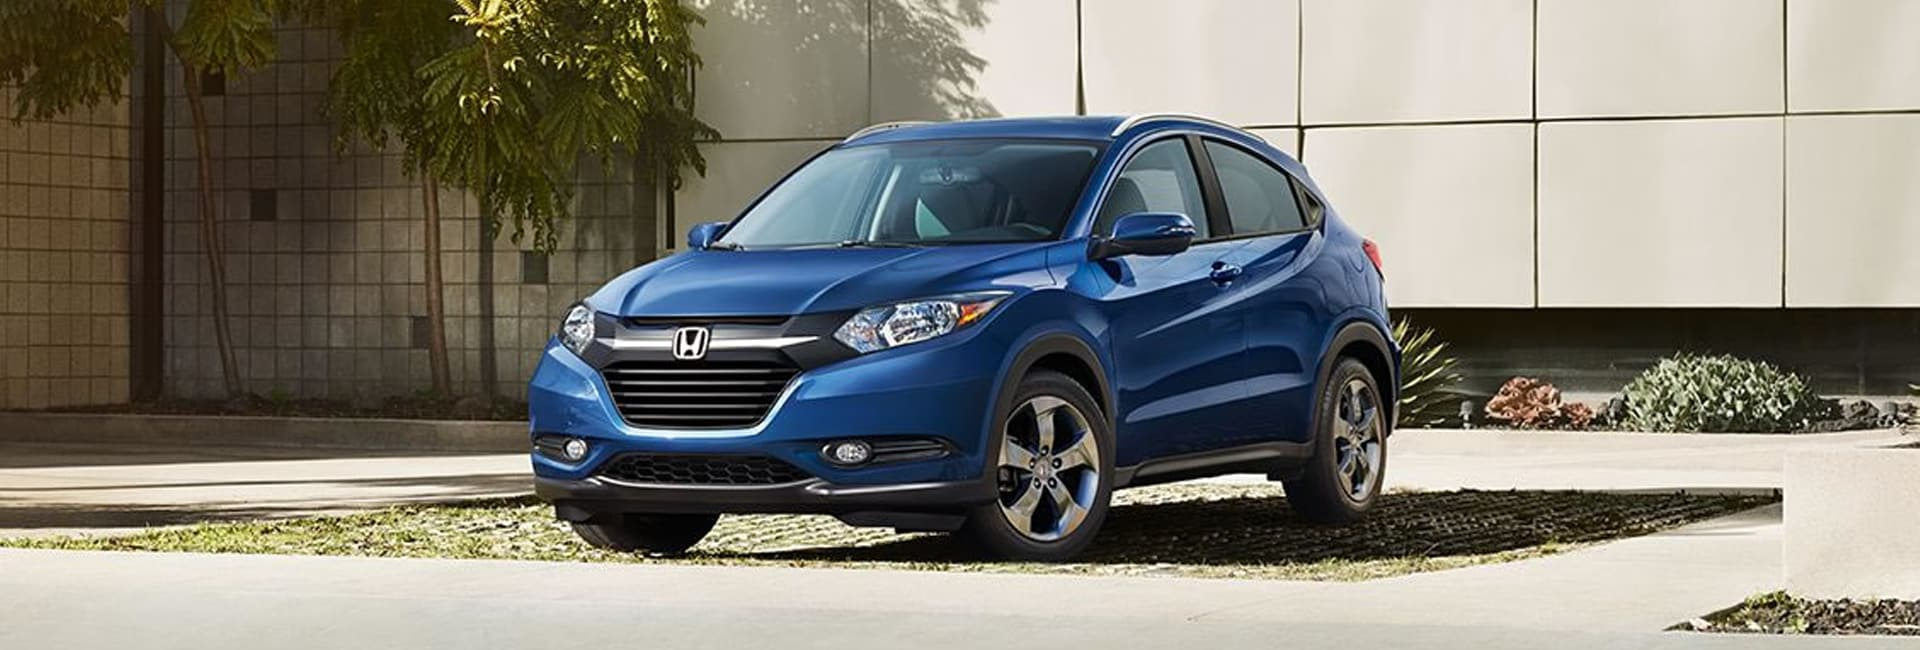 2017 Honda HR-V Exterior Features